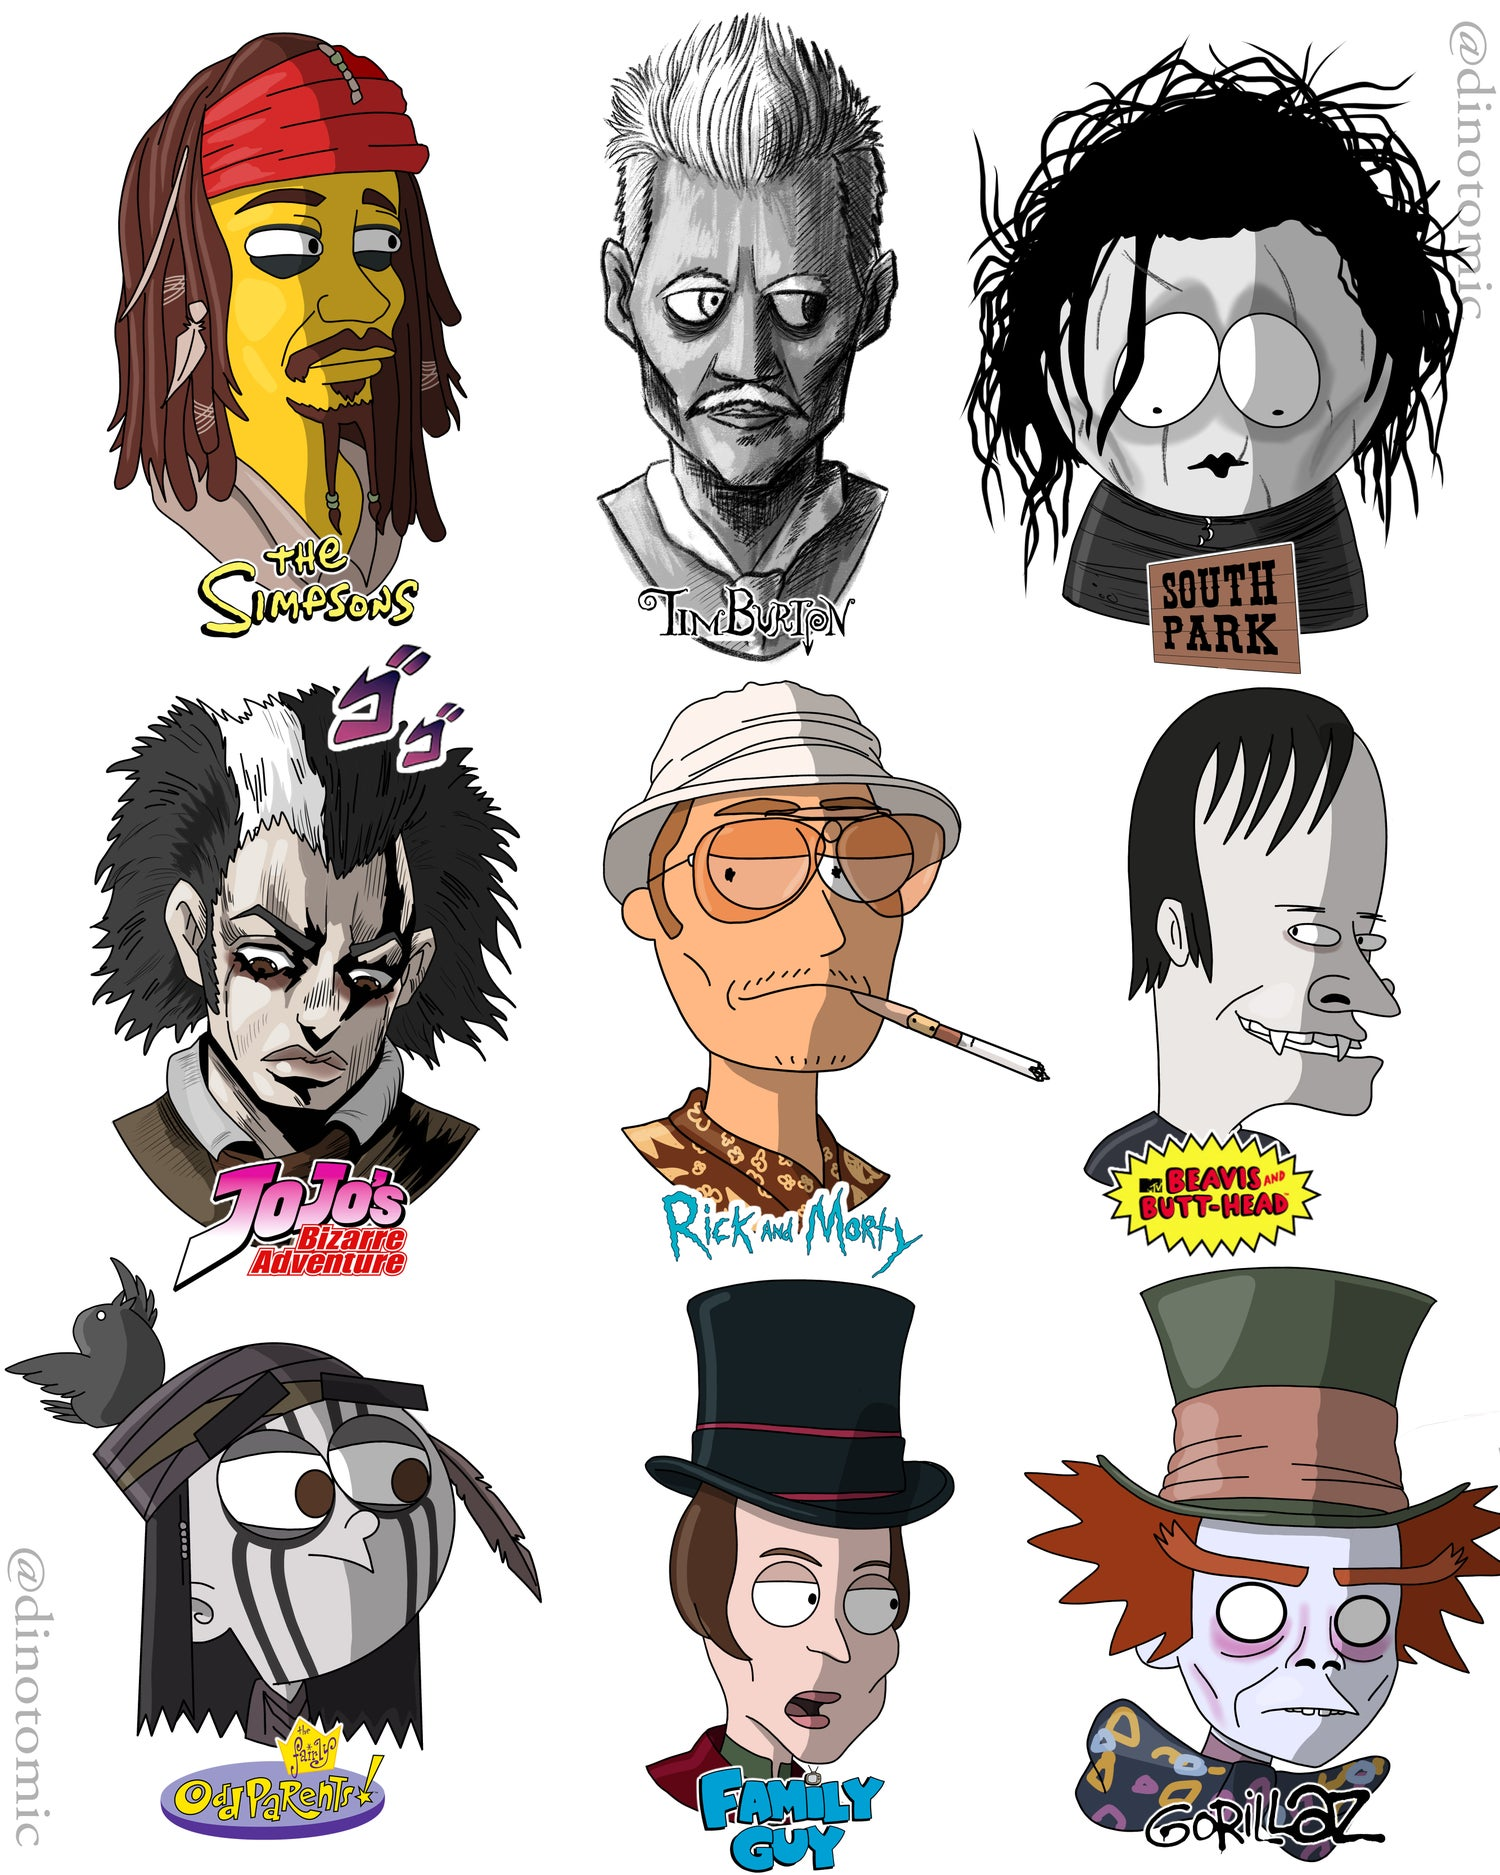 Image of #185 Johnny Depp in many styles